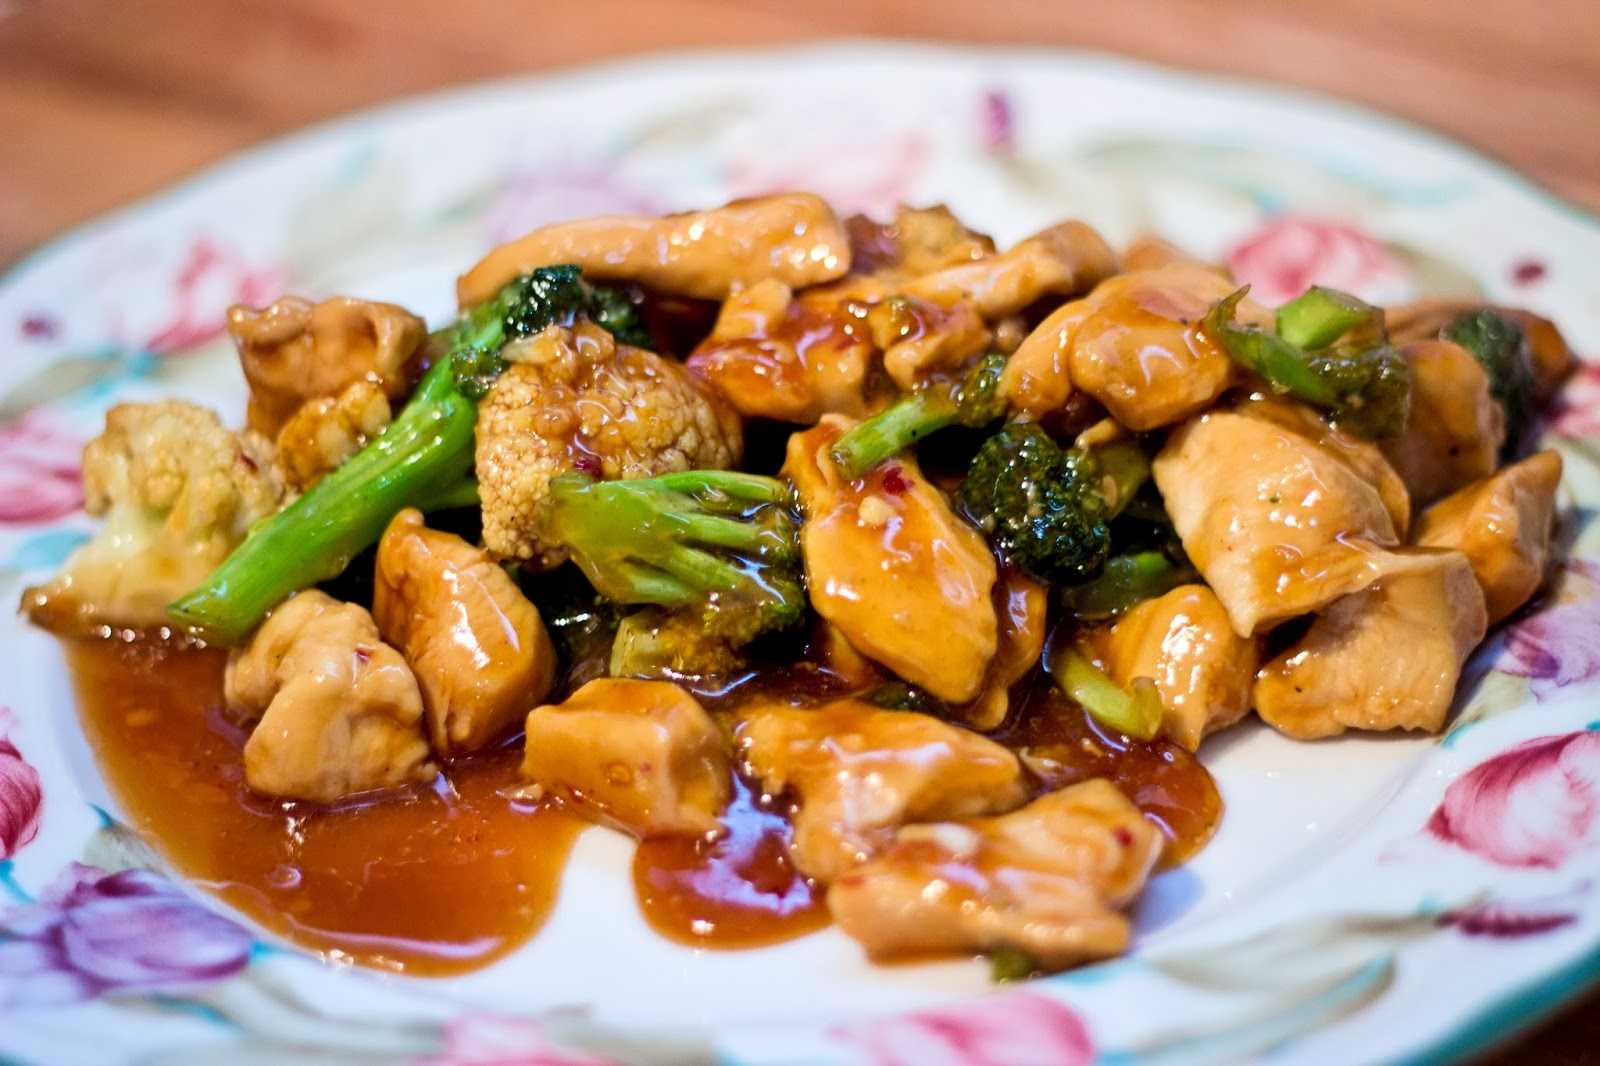 The Dinner Club: Honey Chicken Stir-Fry